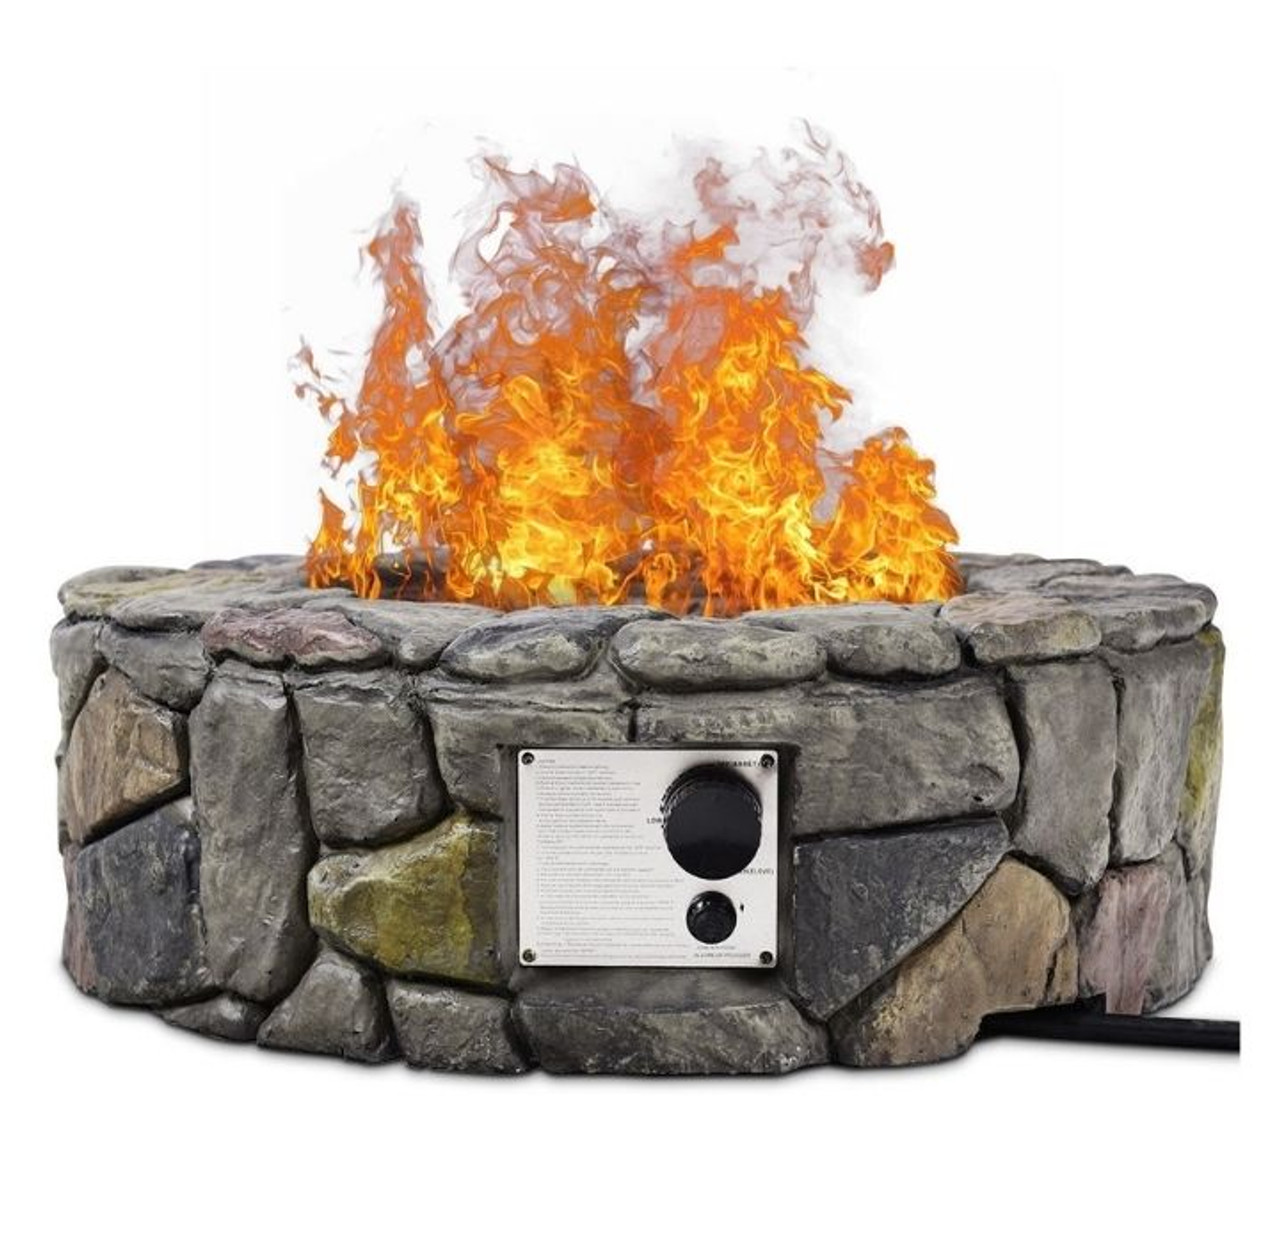 Stone Finish 28″ Propane Gas Fire Pit! 7.99 (REG 9.99) + Free Shipping at Until Gone!